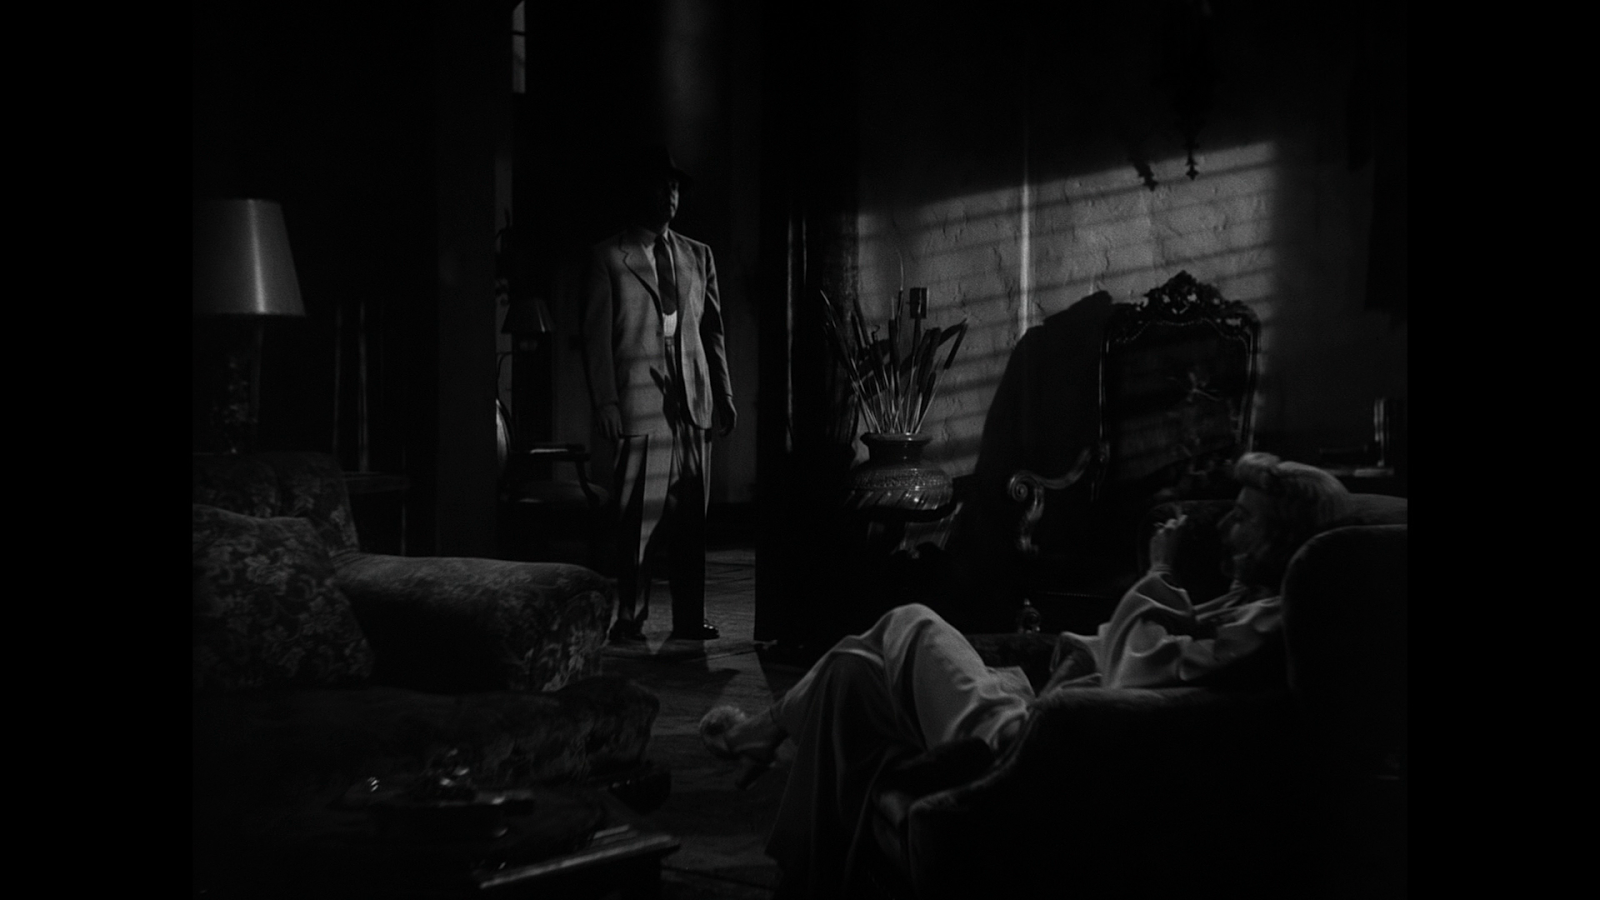 film noir denotation double indemnity